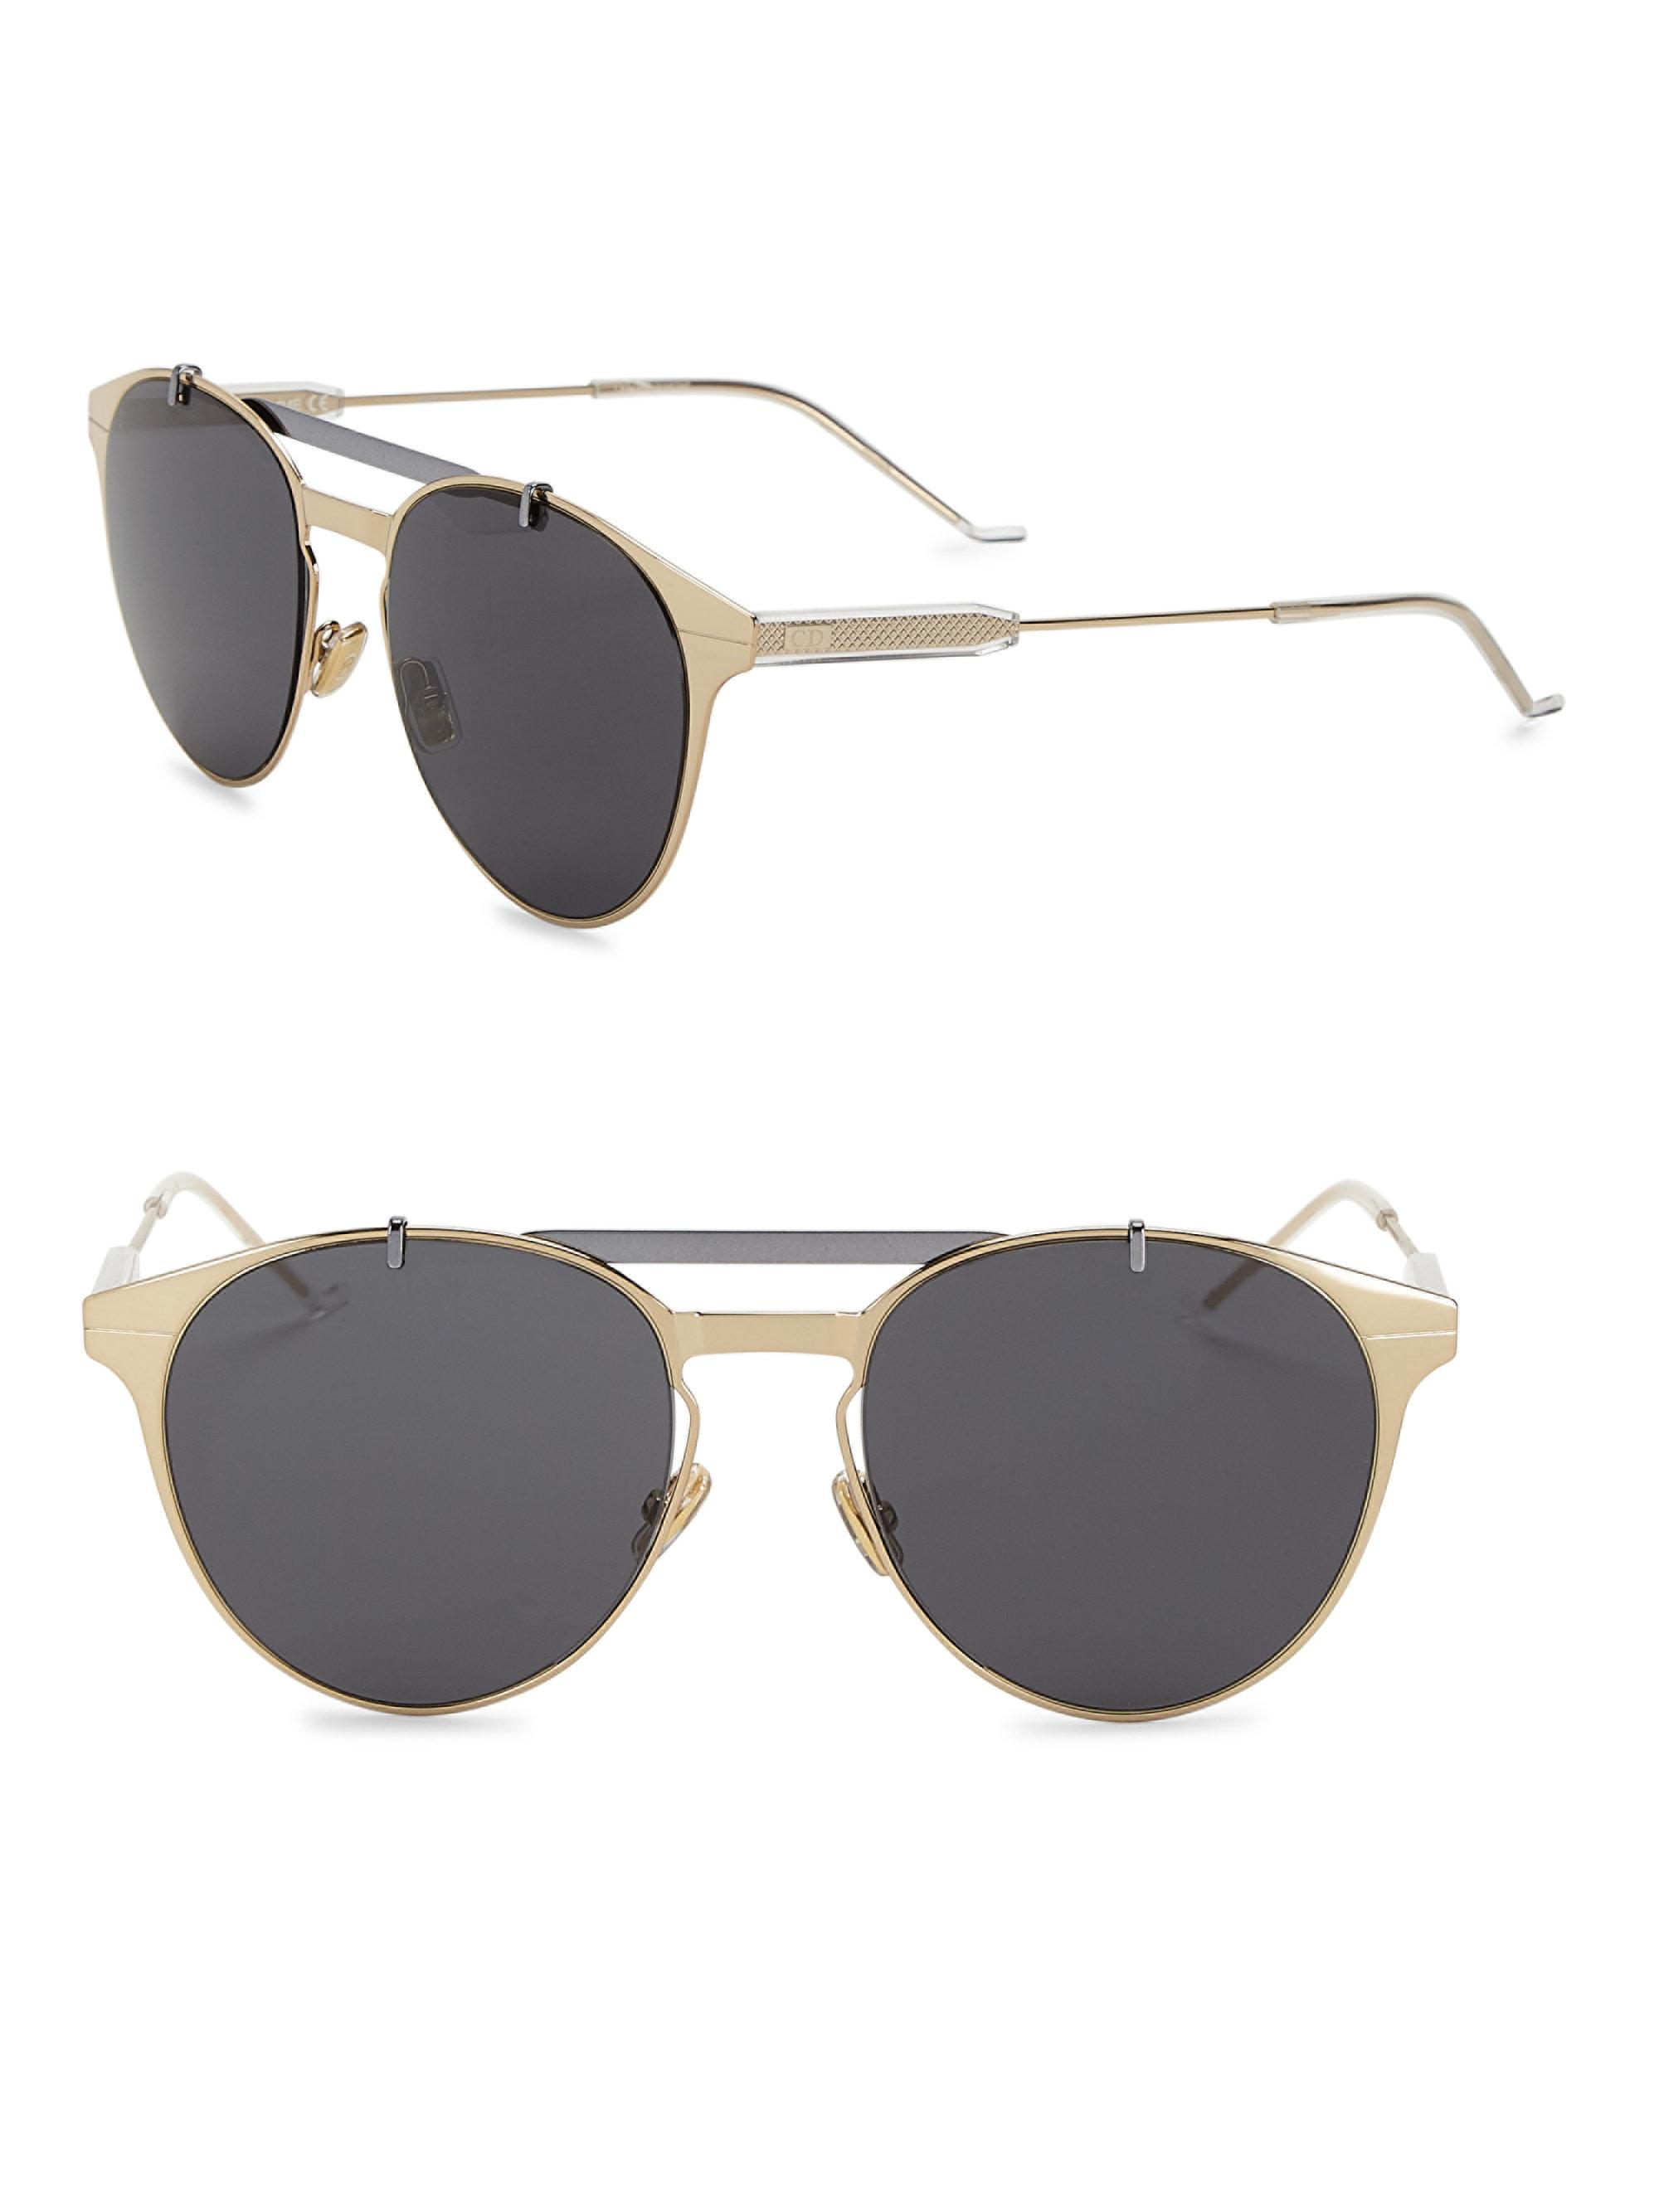 3586728ef0e Lyst - Dior Homme Dior Motion1 53mm Aviator Sunglasses in Metallic ...